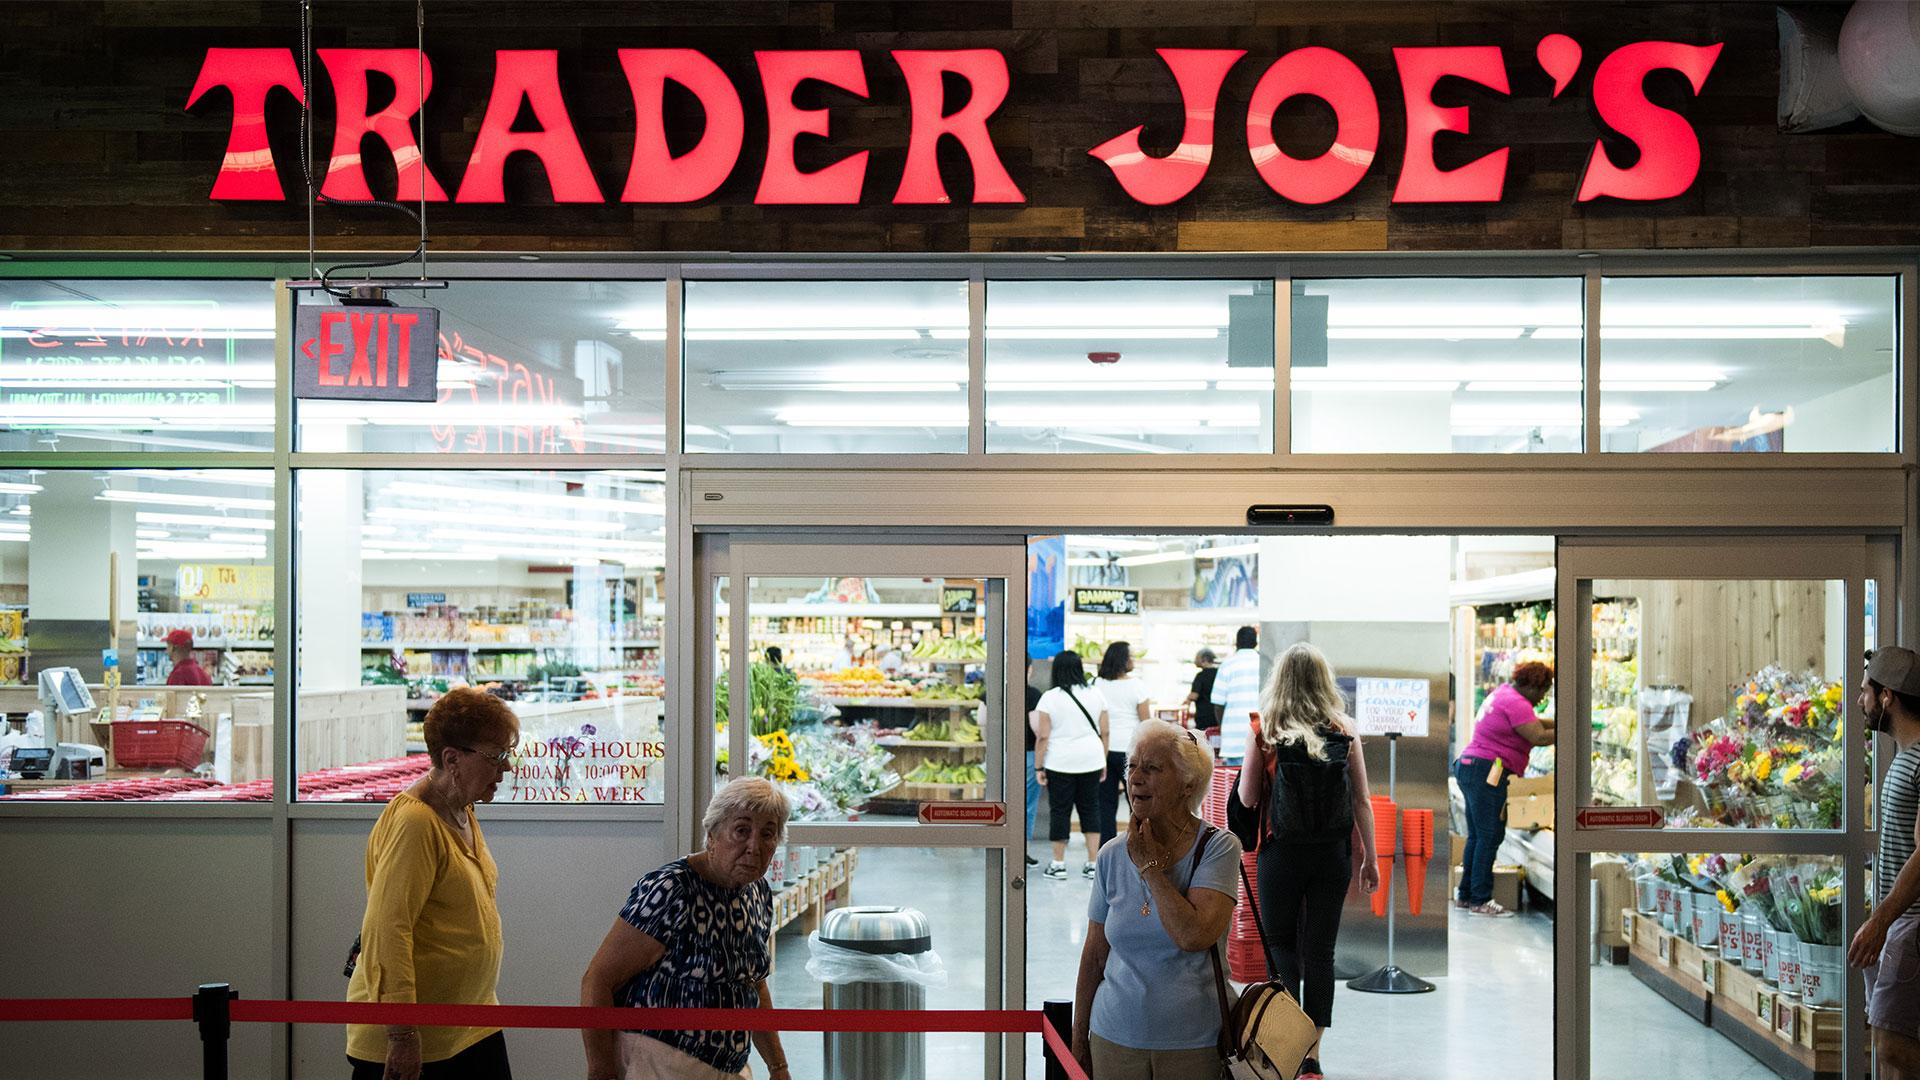 Trader Joe's Just Released Their 15 Favorite Recipes